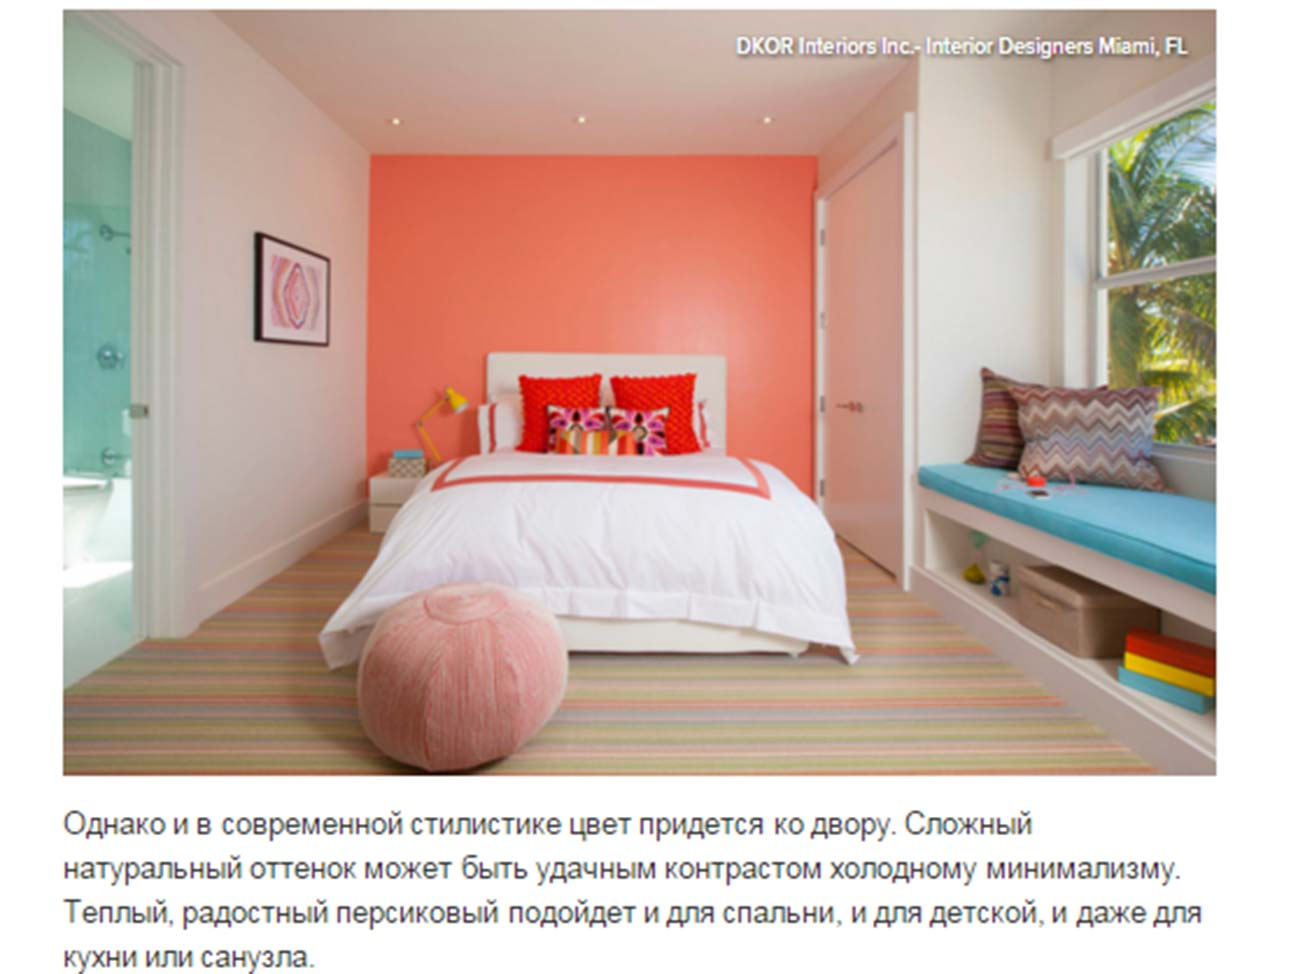 DKOR's Interior Design Project featured on Houzz